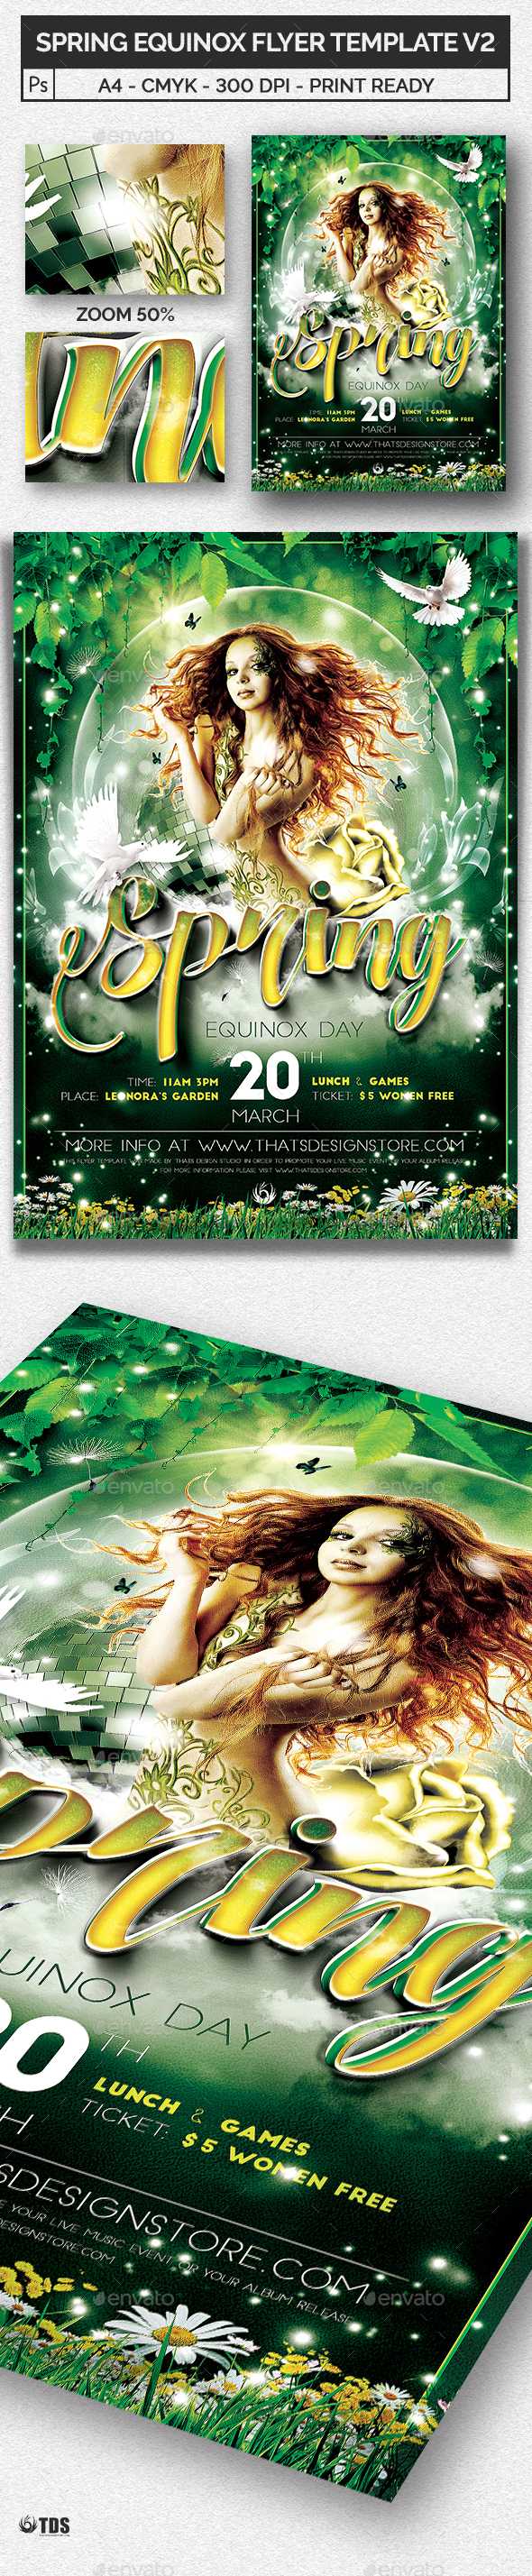 Spring Equinox Flyer Template V2 - Clubs & Parties Events